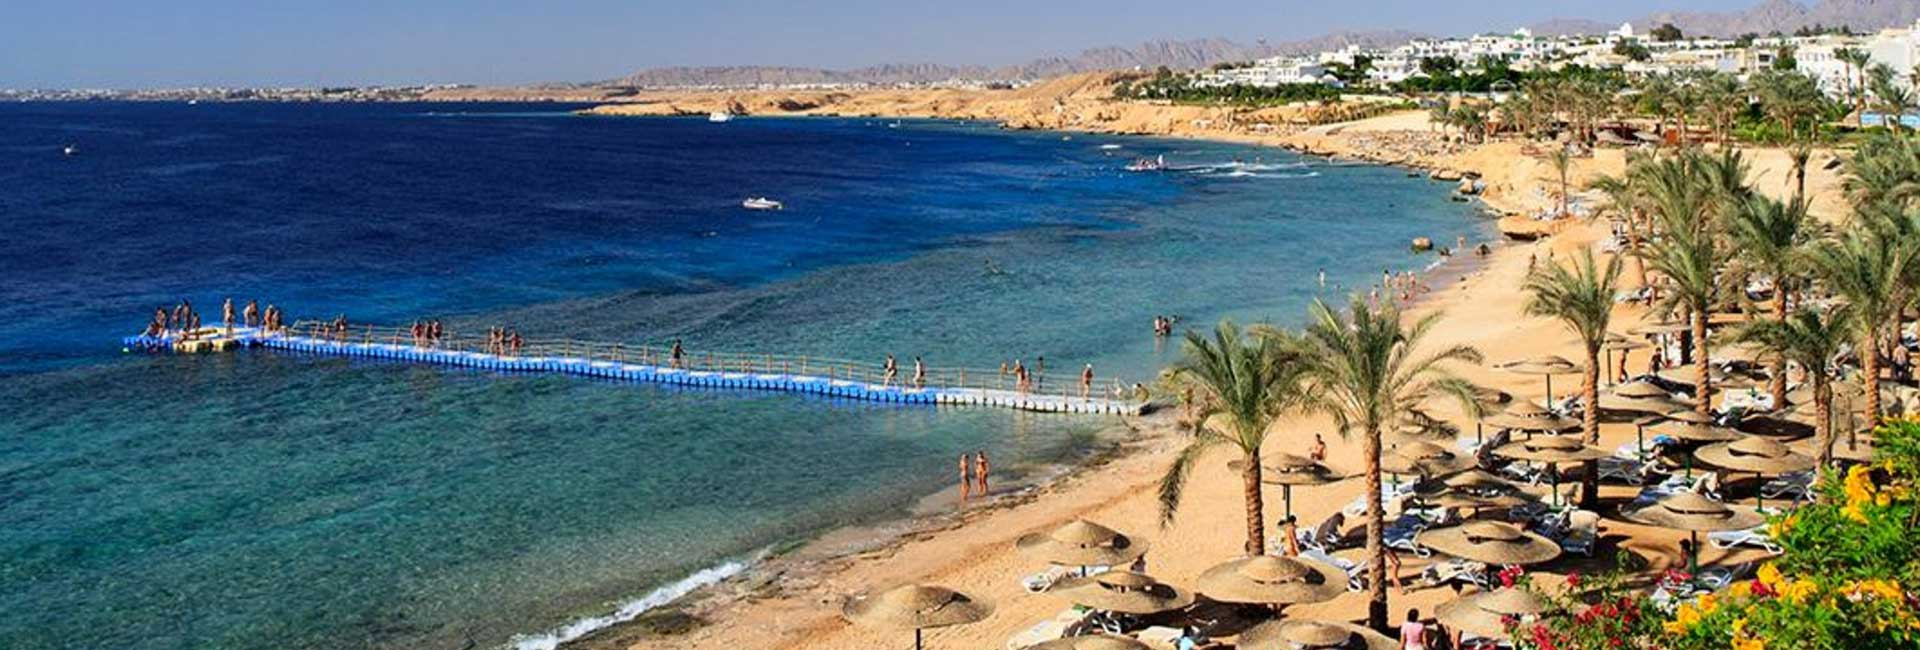 Sharm El Sheikh Information